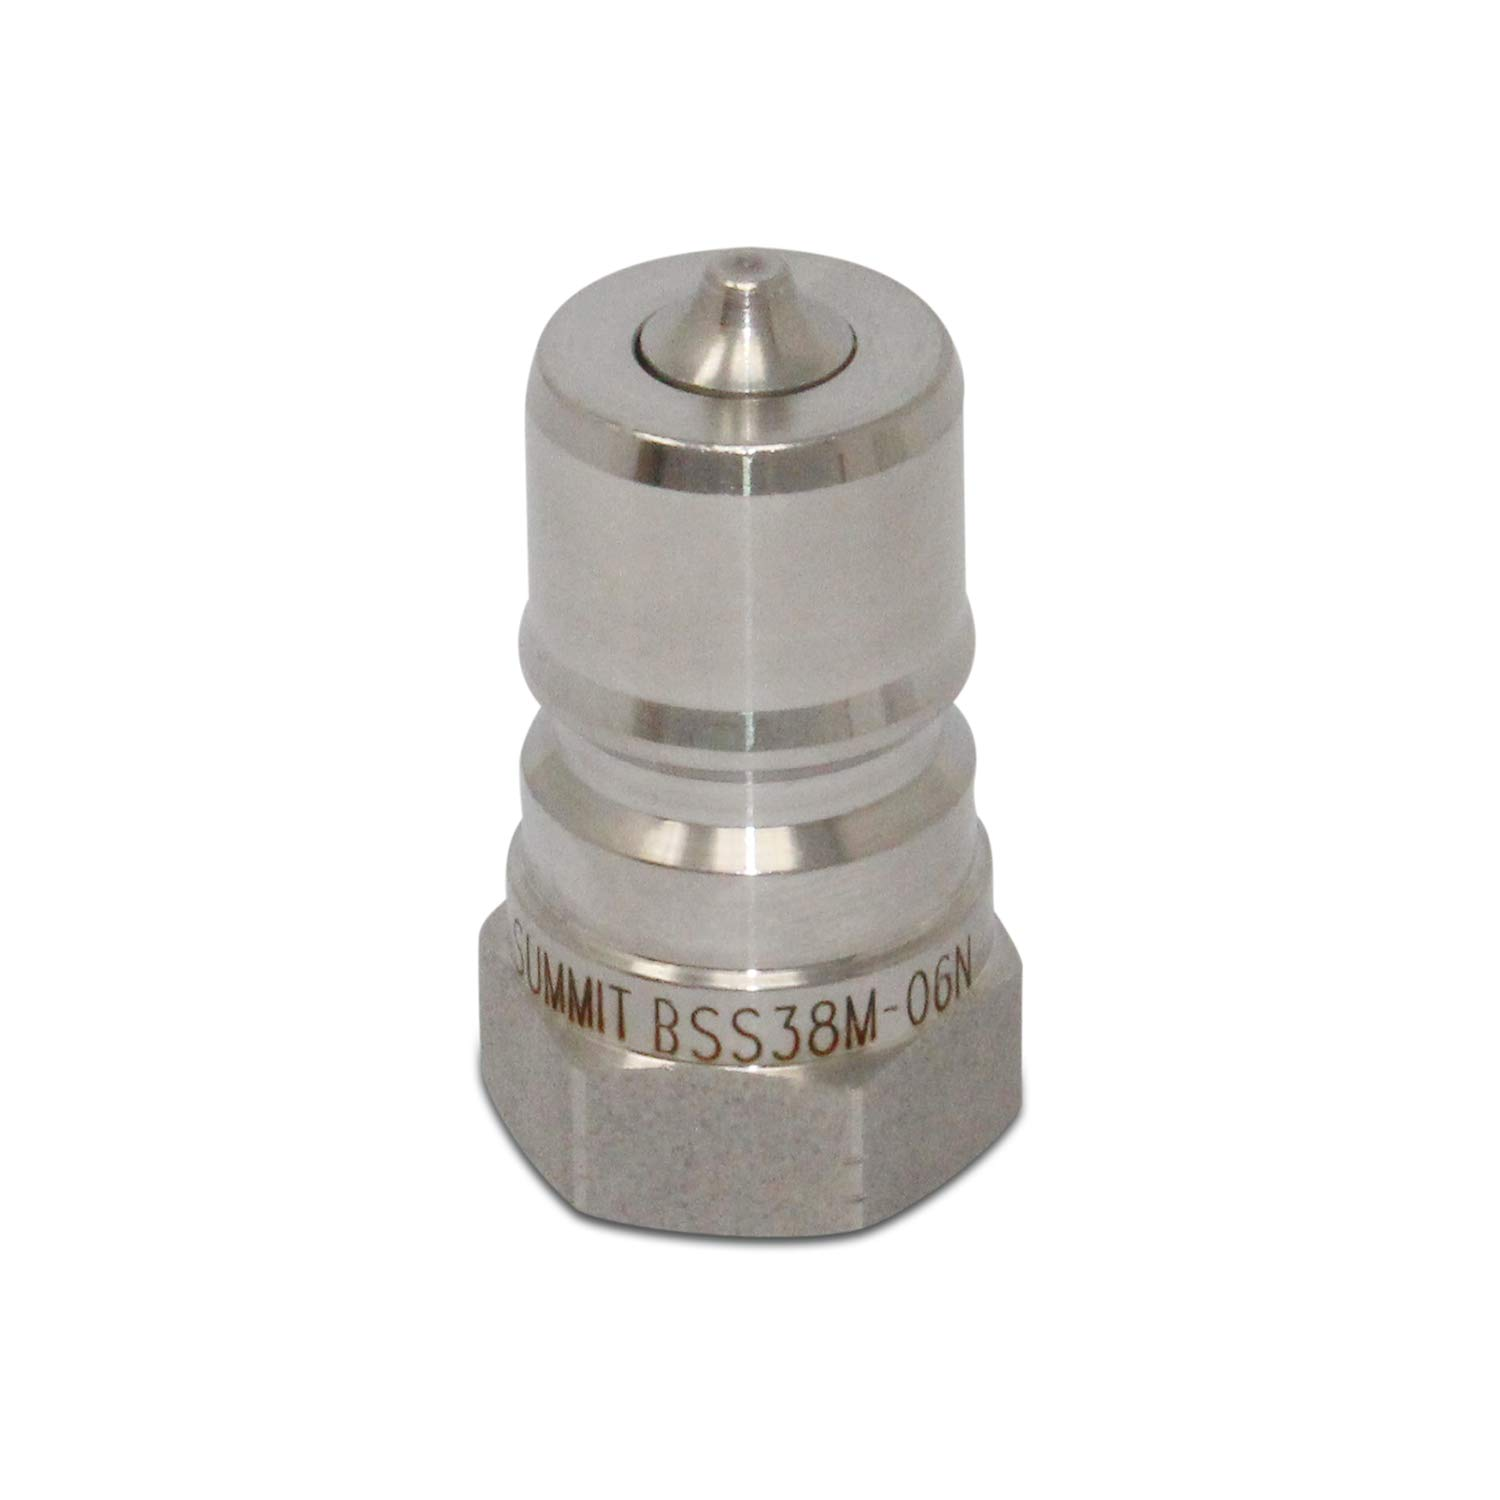 3//8/″ NPT ISO 7241-B Stainless Steel Quick Disconnect Hydraulic Male Coupler Summit Hydraulics